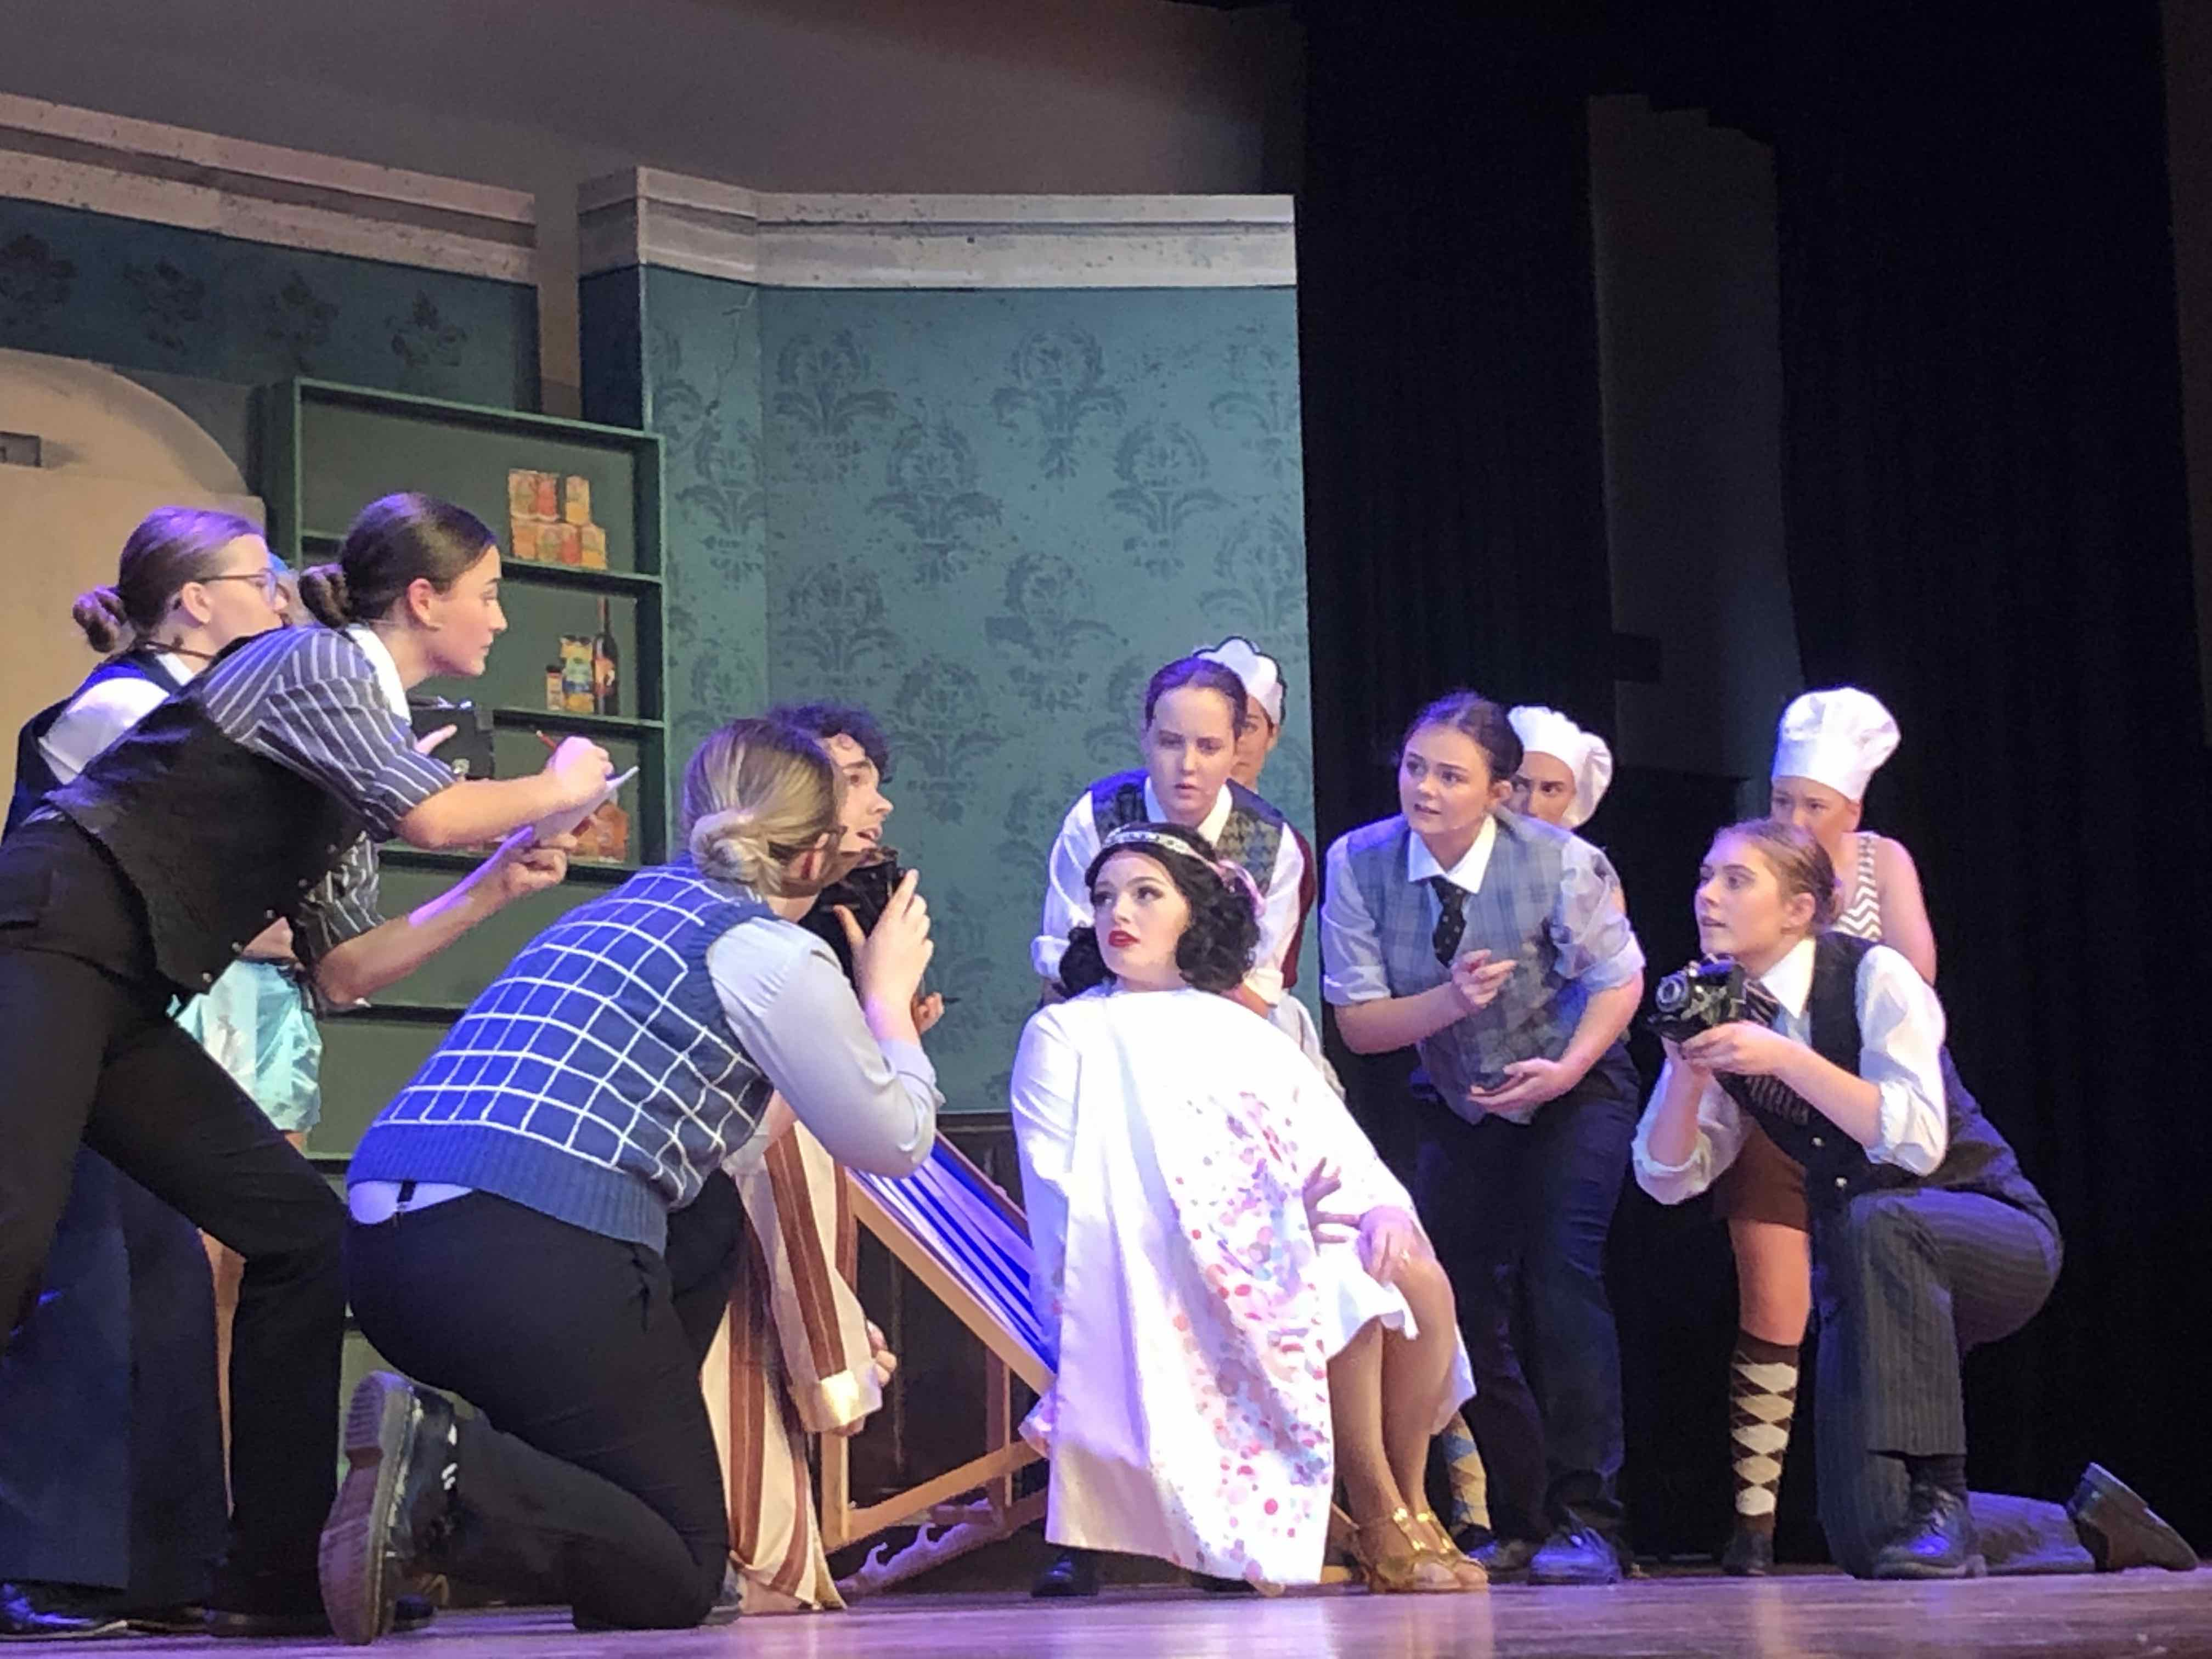 Broadway comes to Mentone